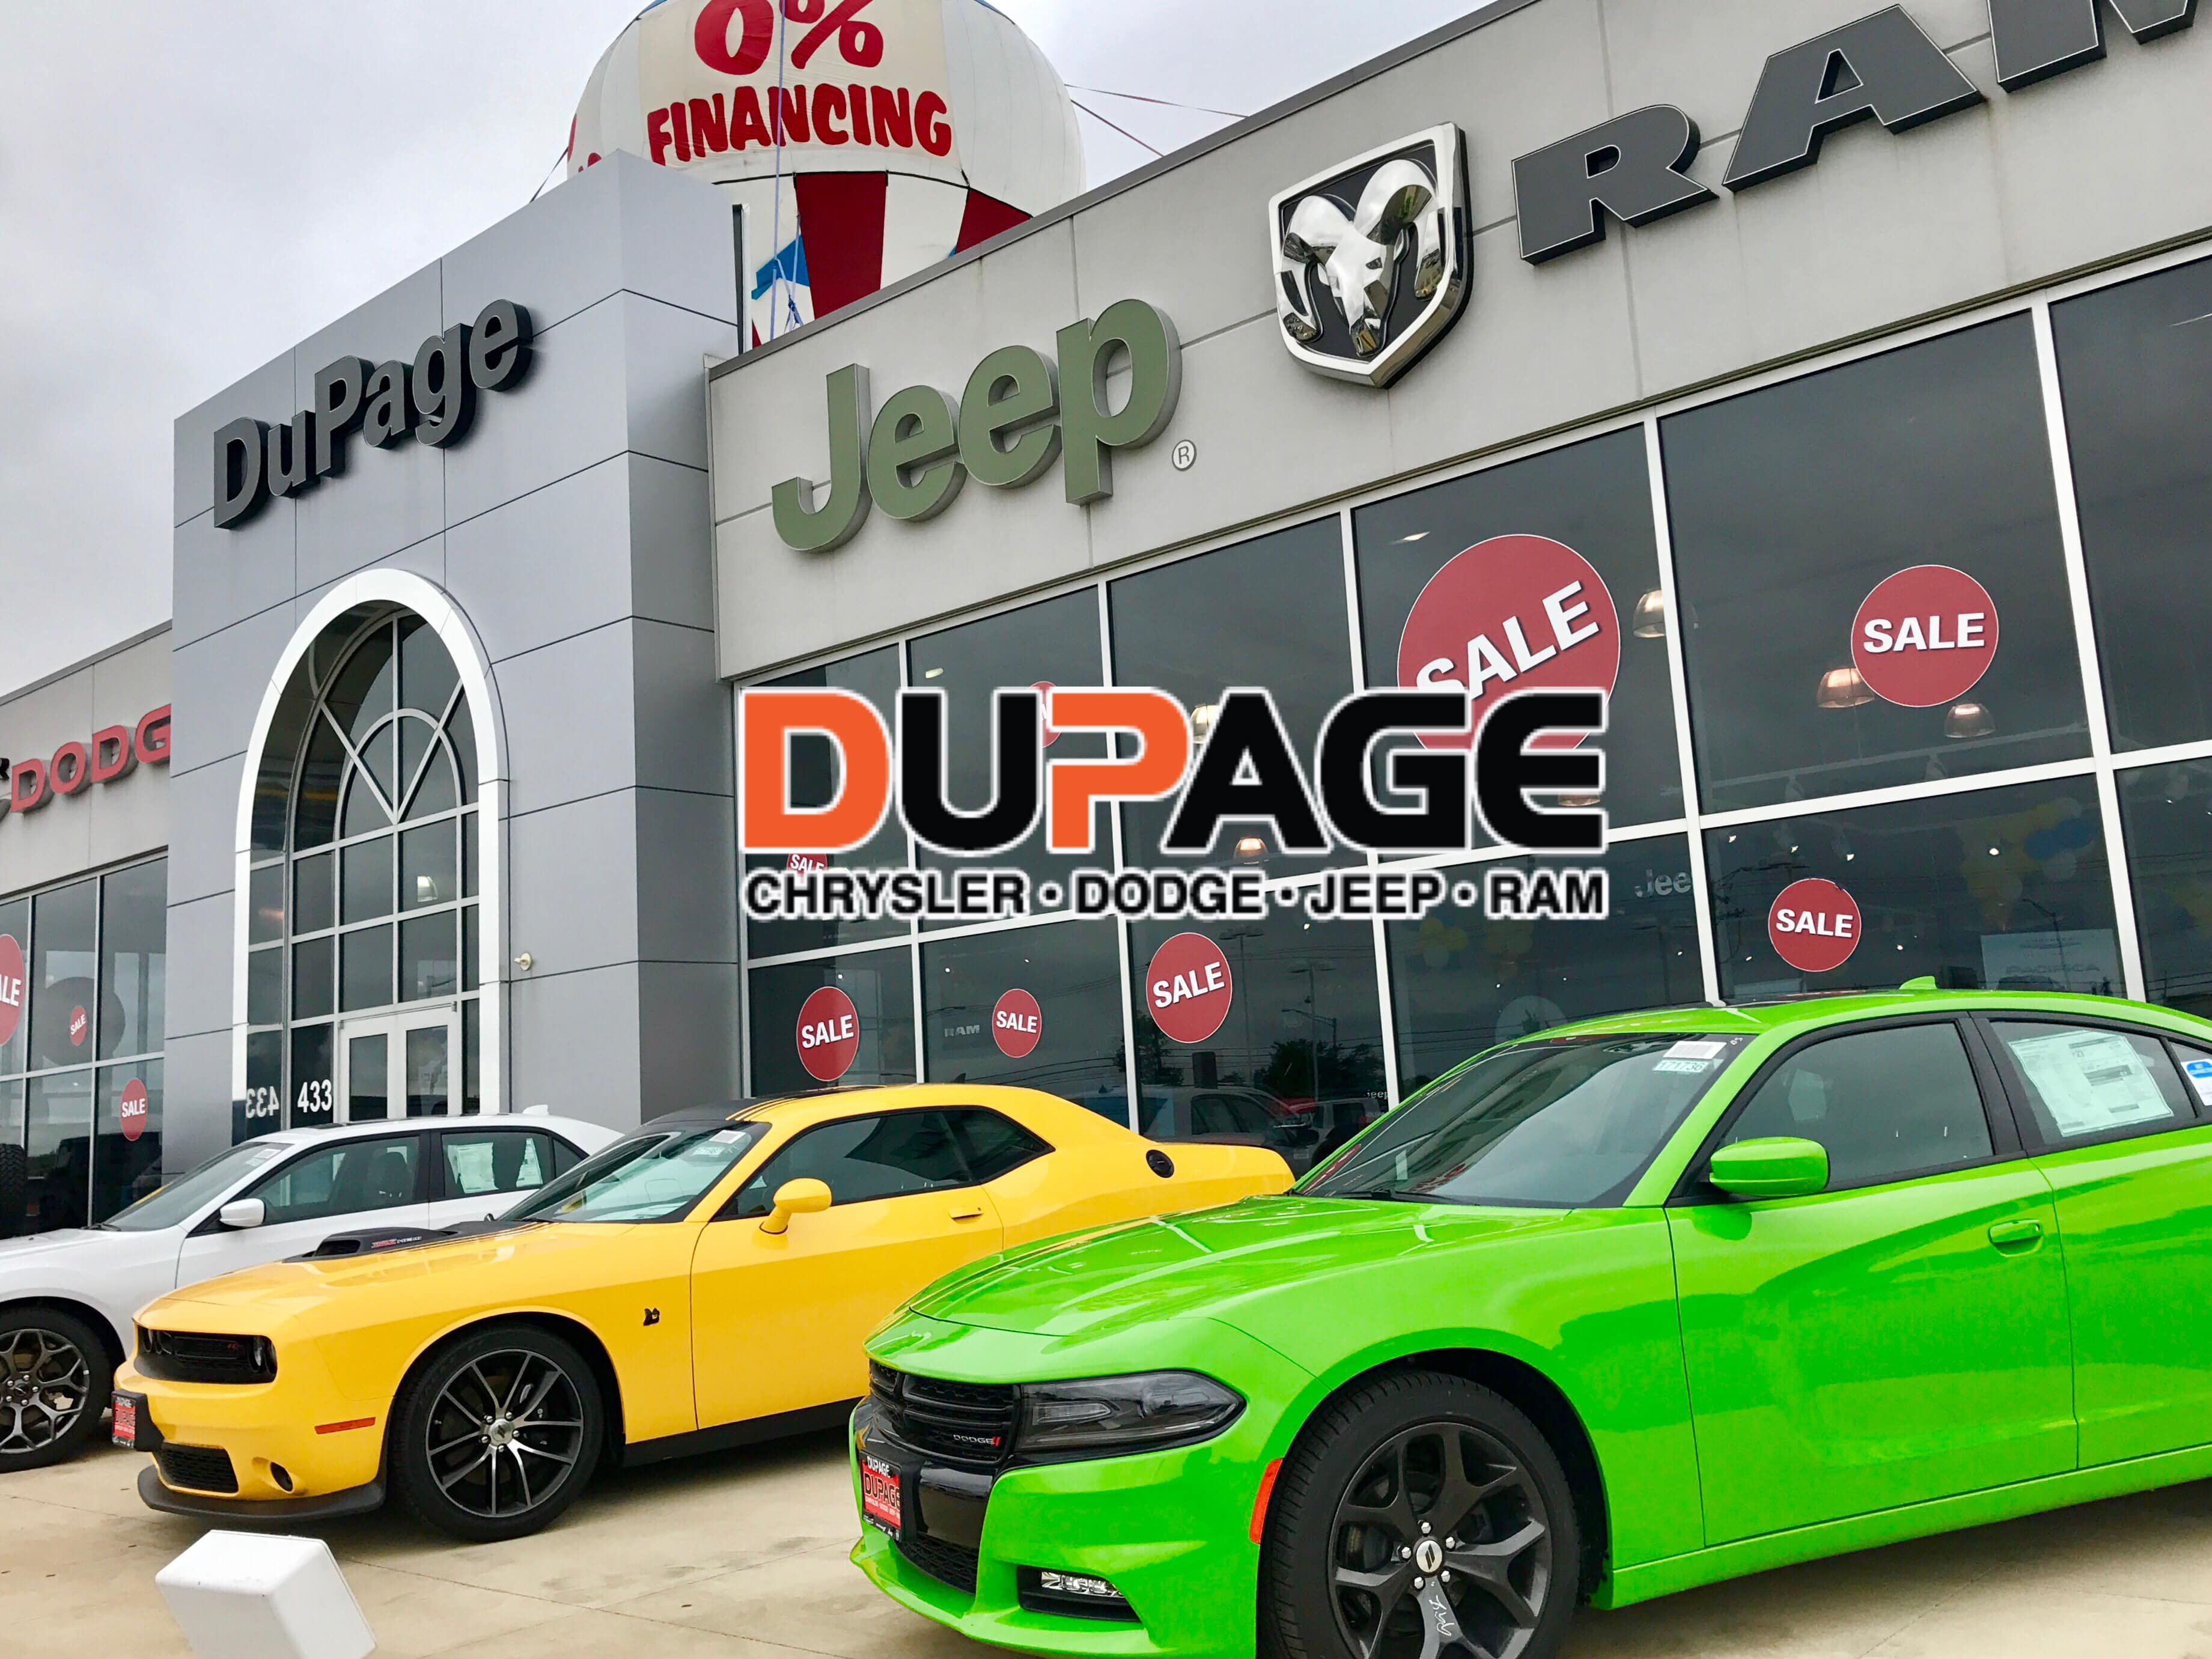 DuPage Chrysler Dodge Jeep RAM